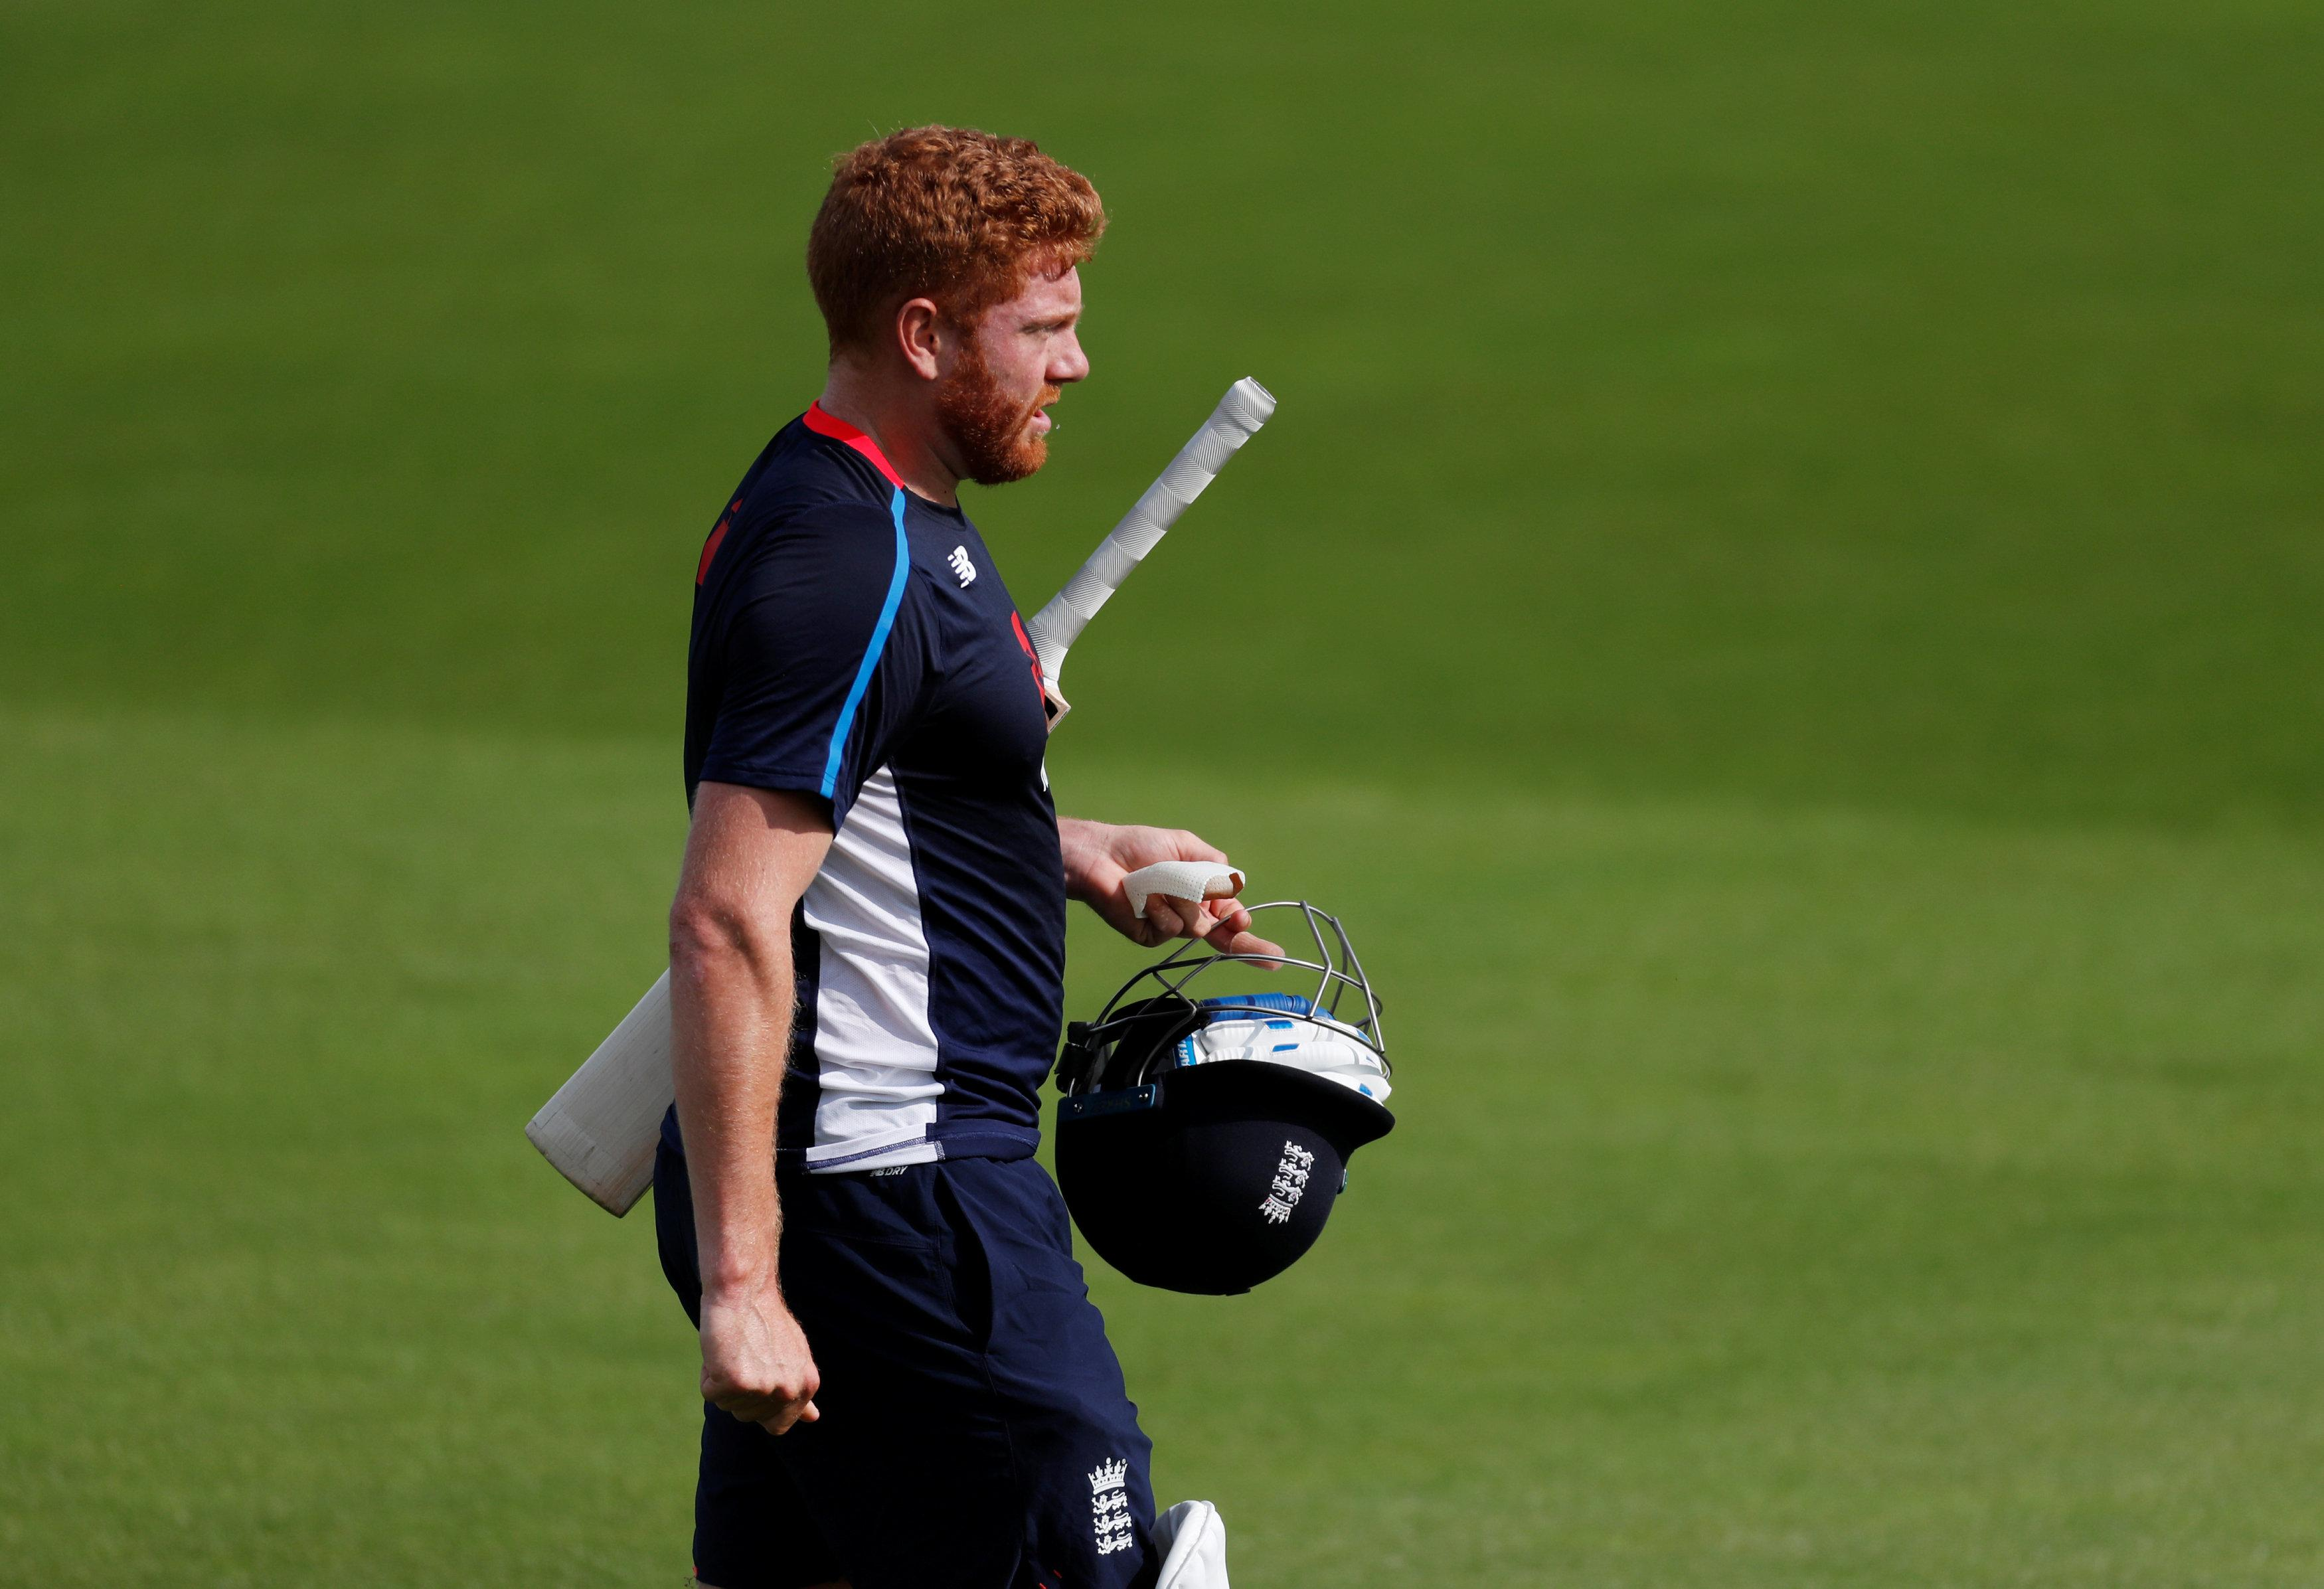 Jonny Bairstow will play in the Fourth Test, but not as wicketkeeper